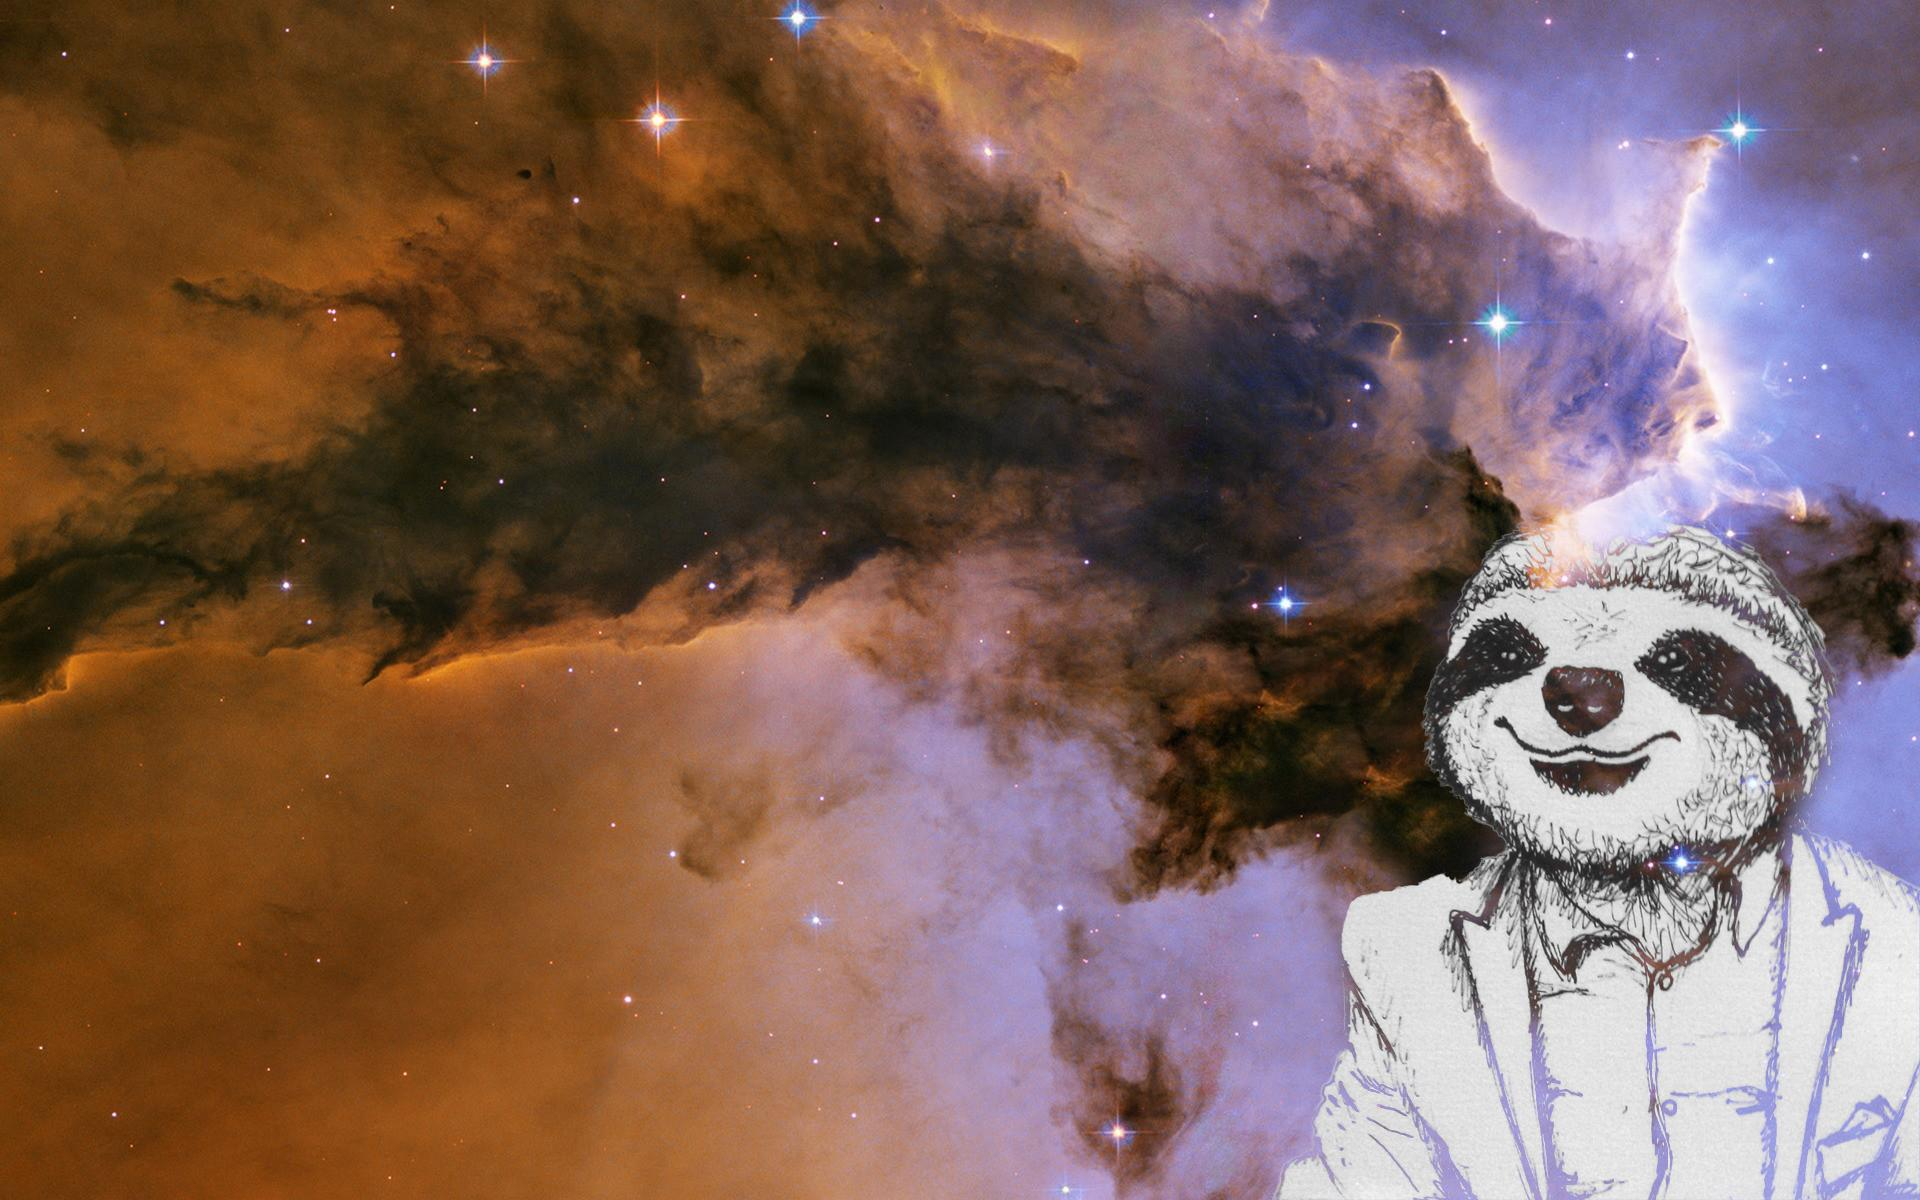 Sloth In Space I drew a sloth in a fancy suit 1920x1200